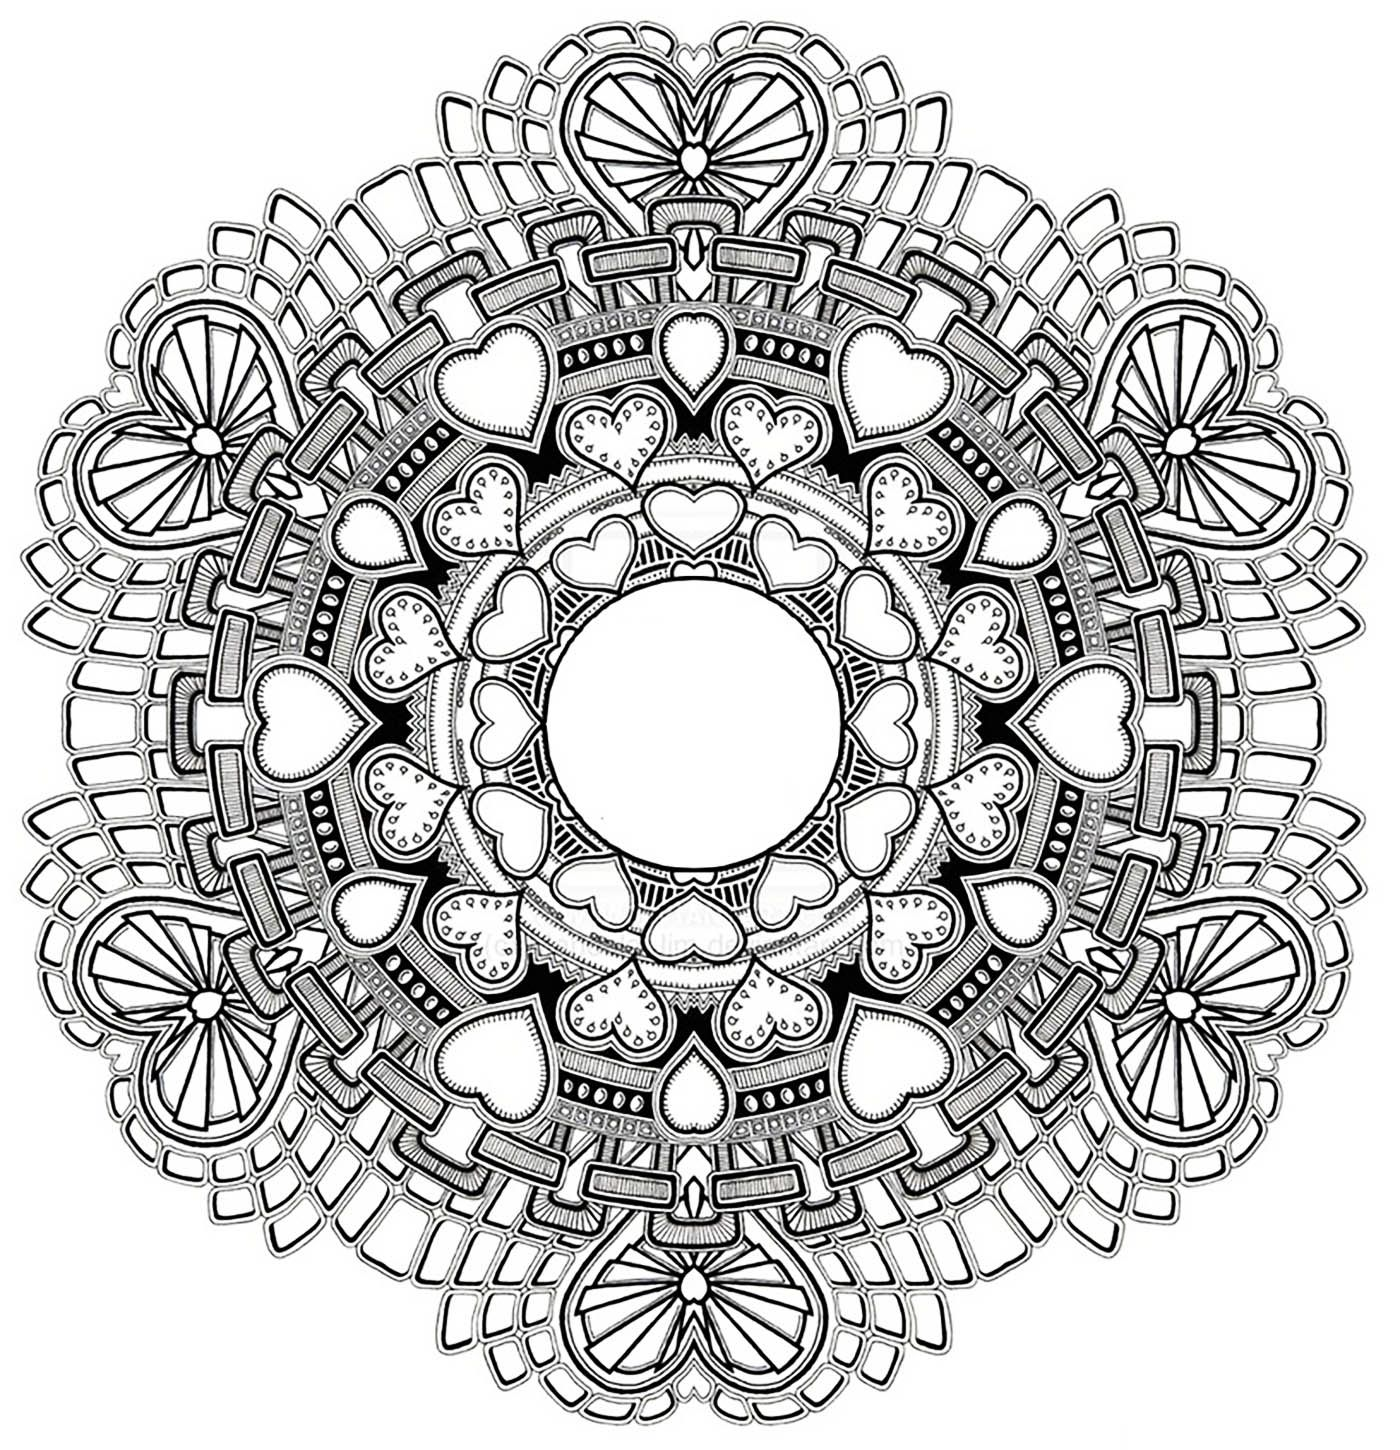 Mandala to download in pdf 3 - Image with : HeartFrom the gallery ...